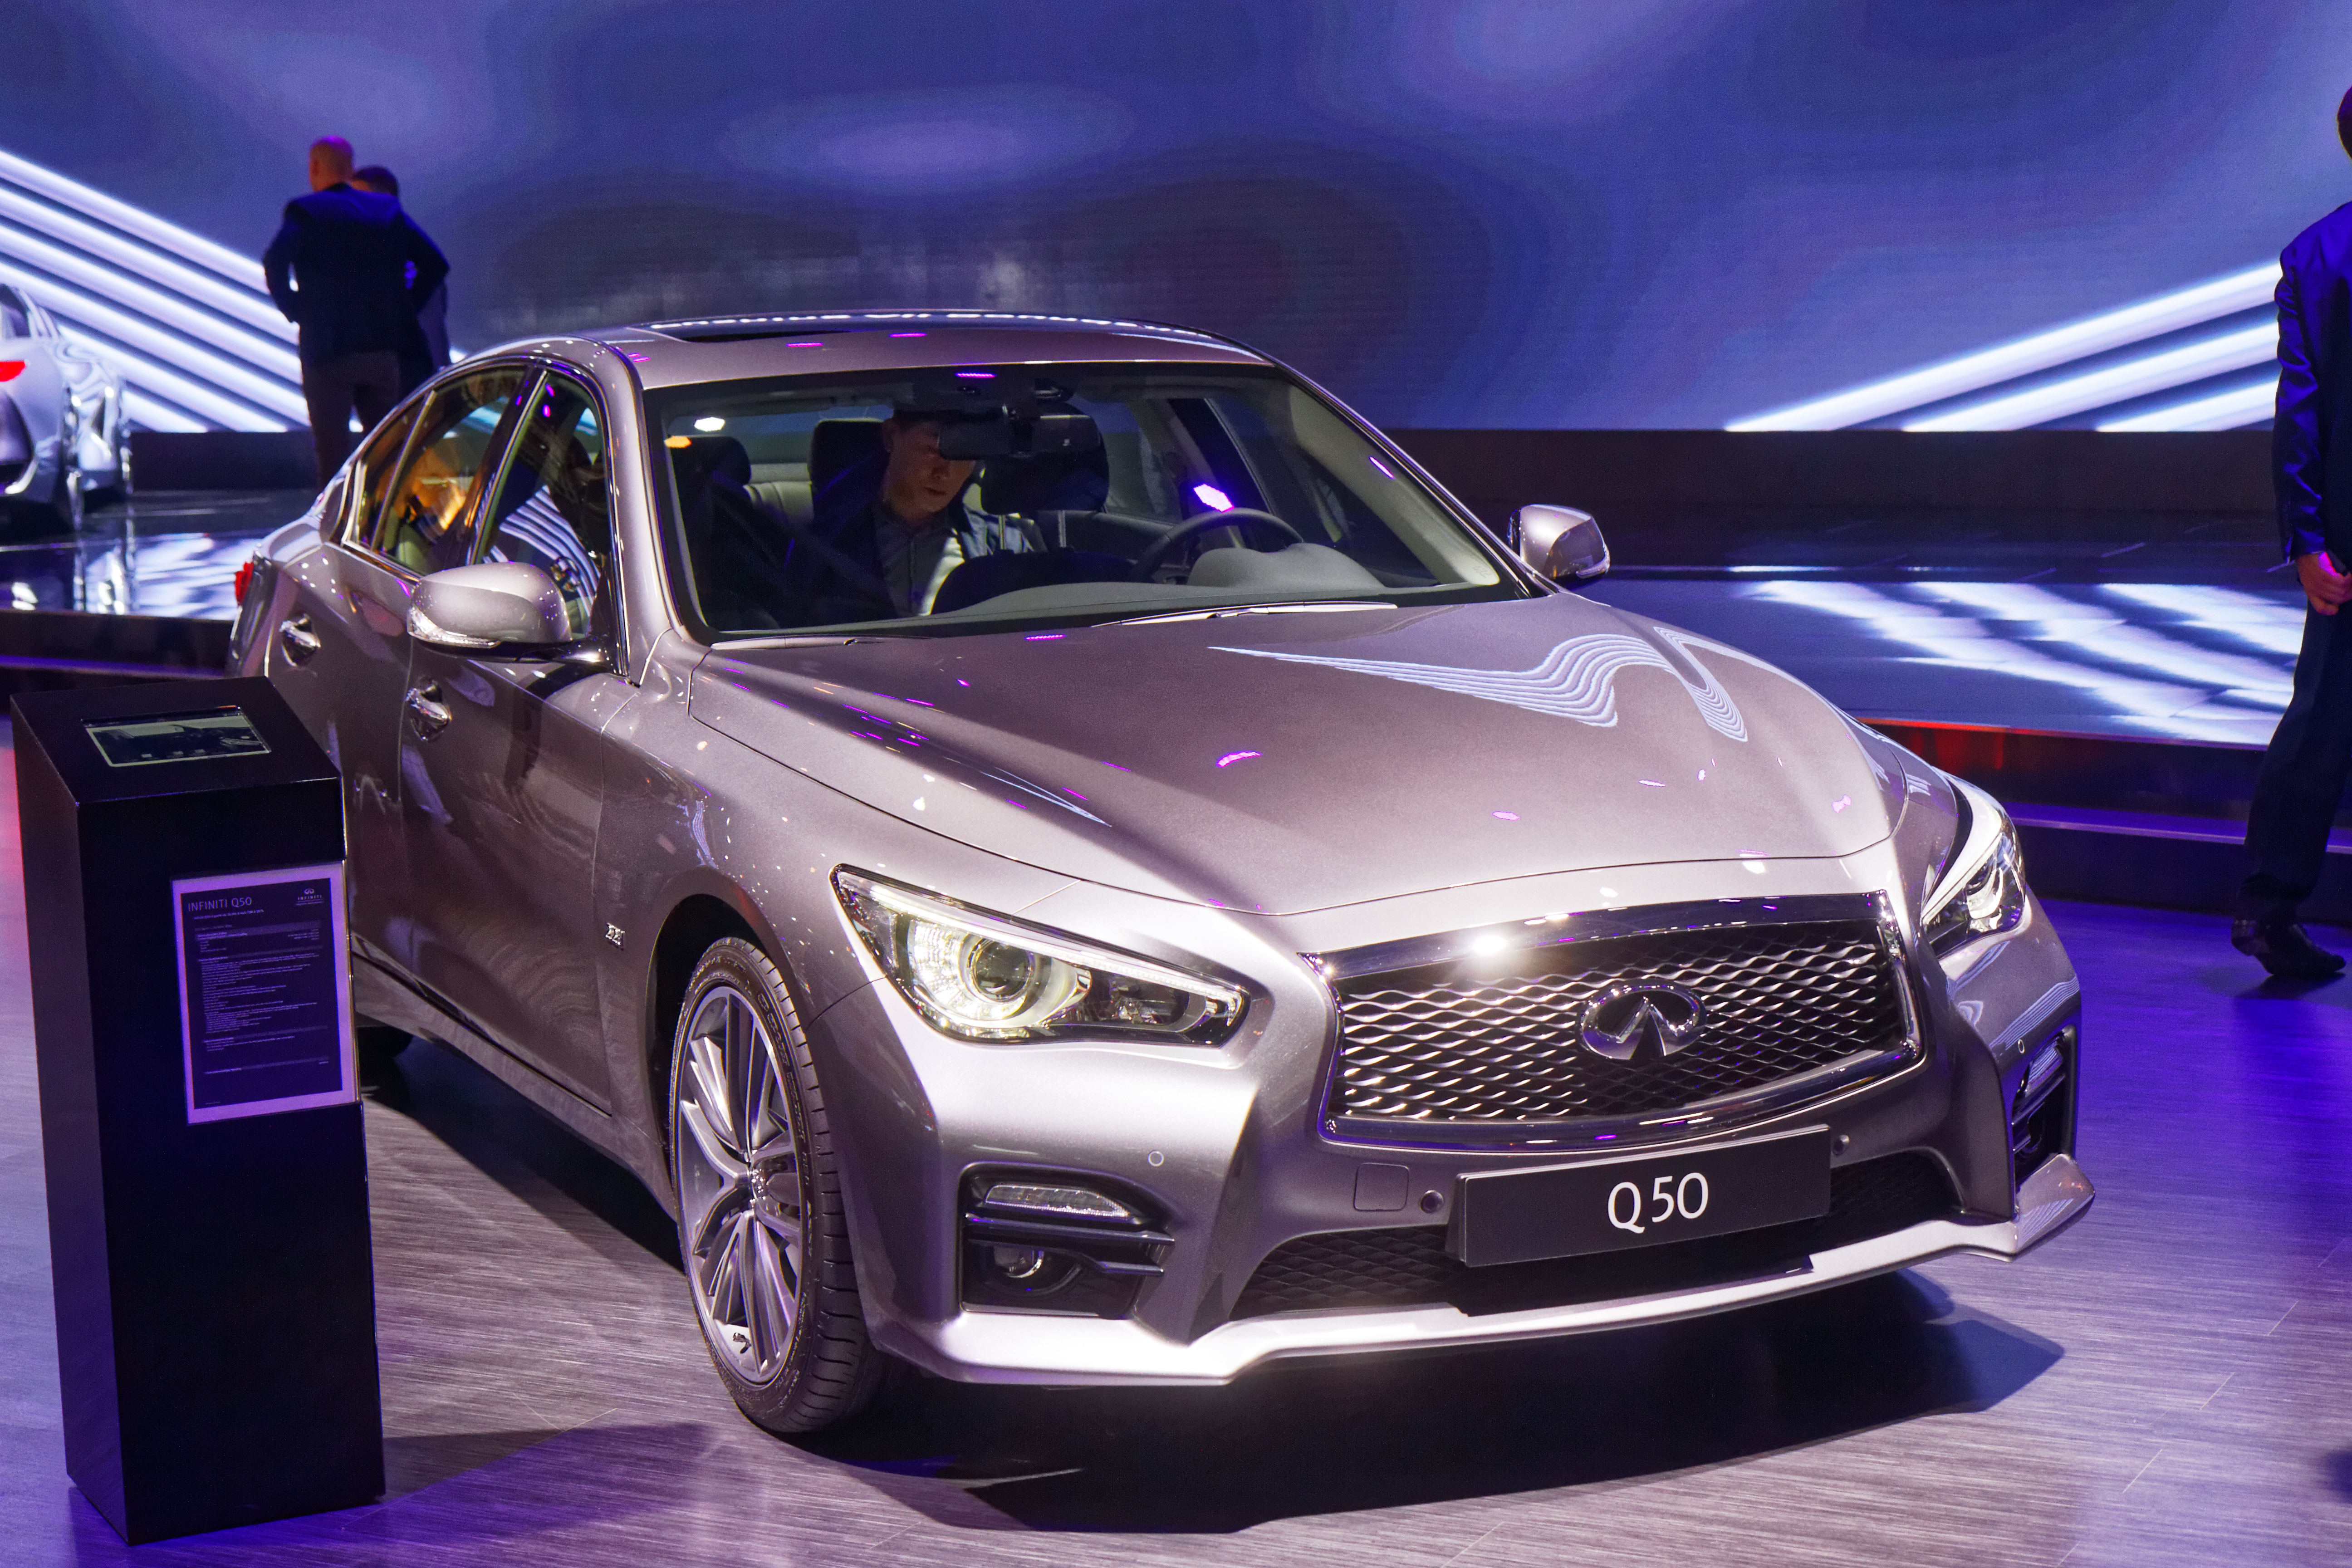 wallpaper photos infiniti and hd other wallpapers images infinity